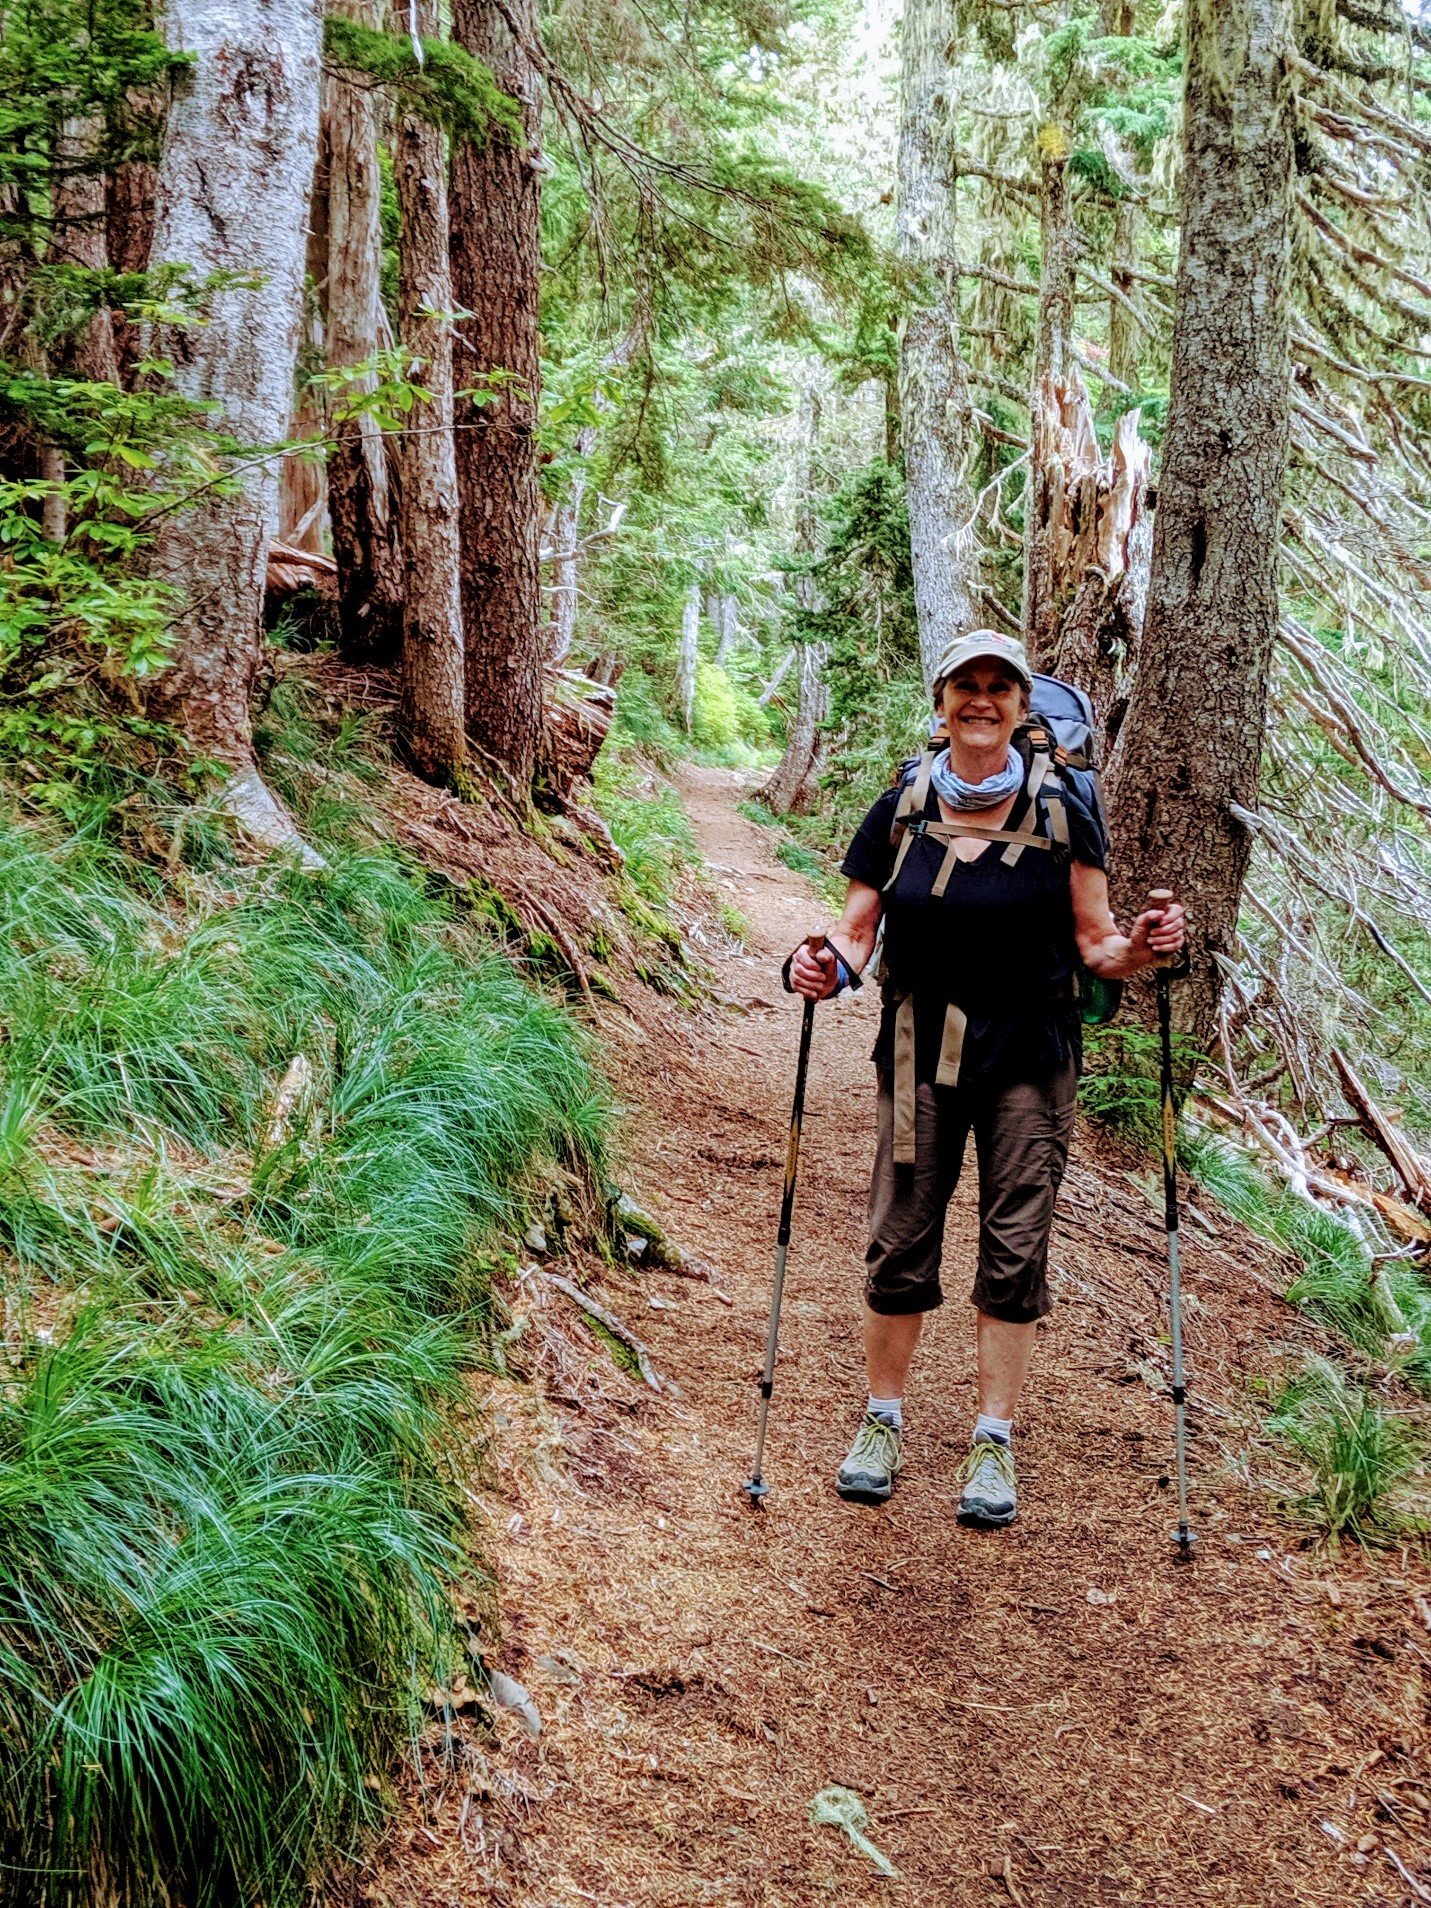 Trisha Wirta with her hiking gear following a trail on the Sole Duck path.